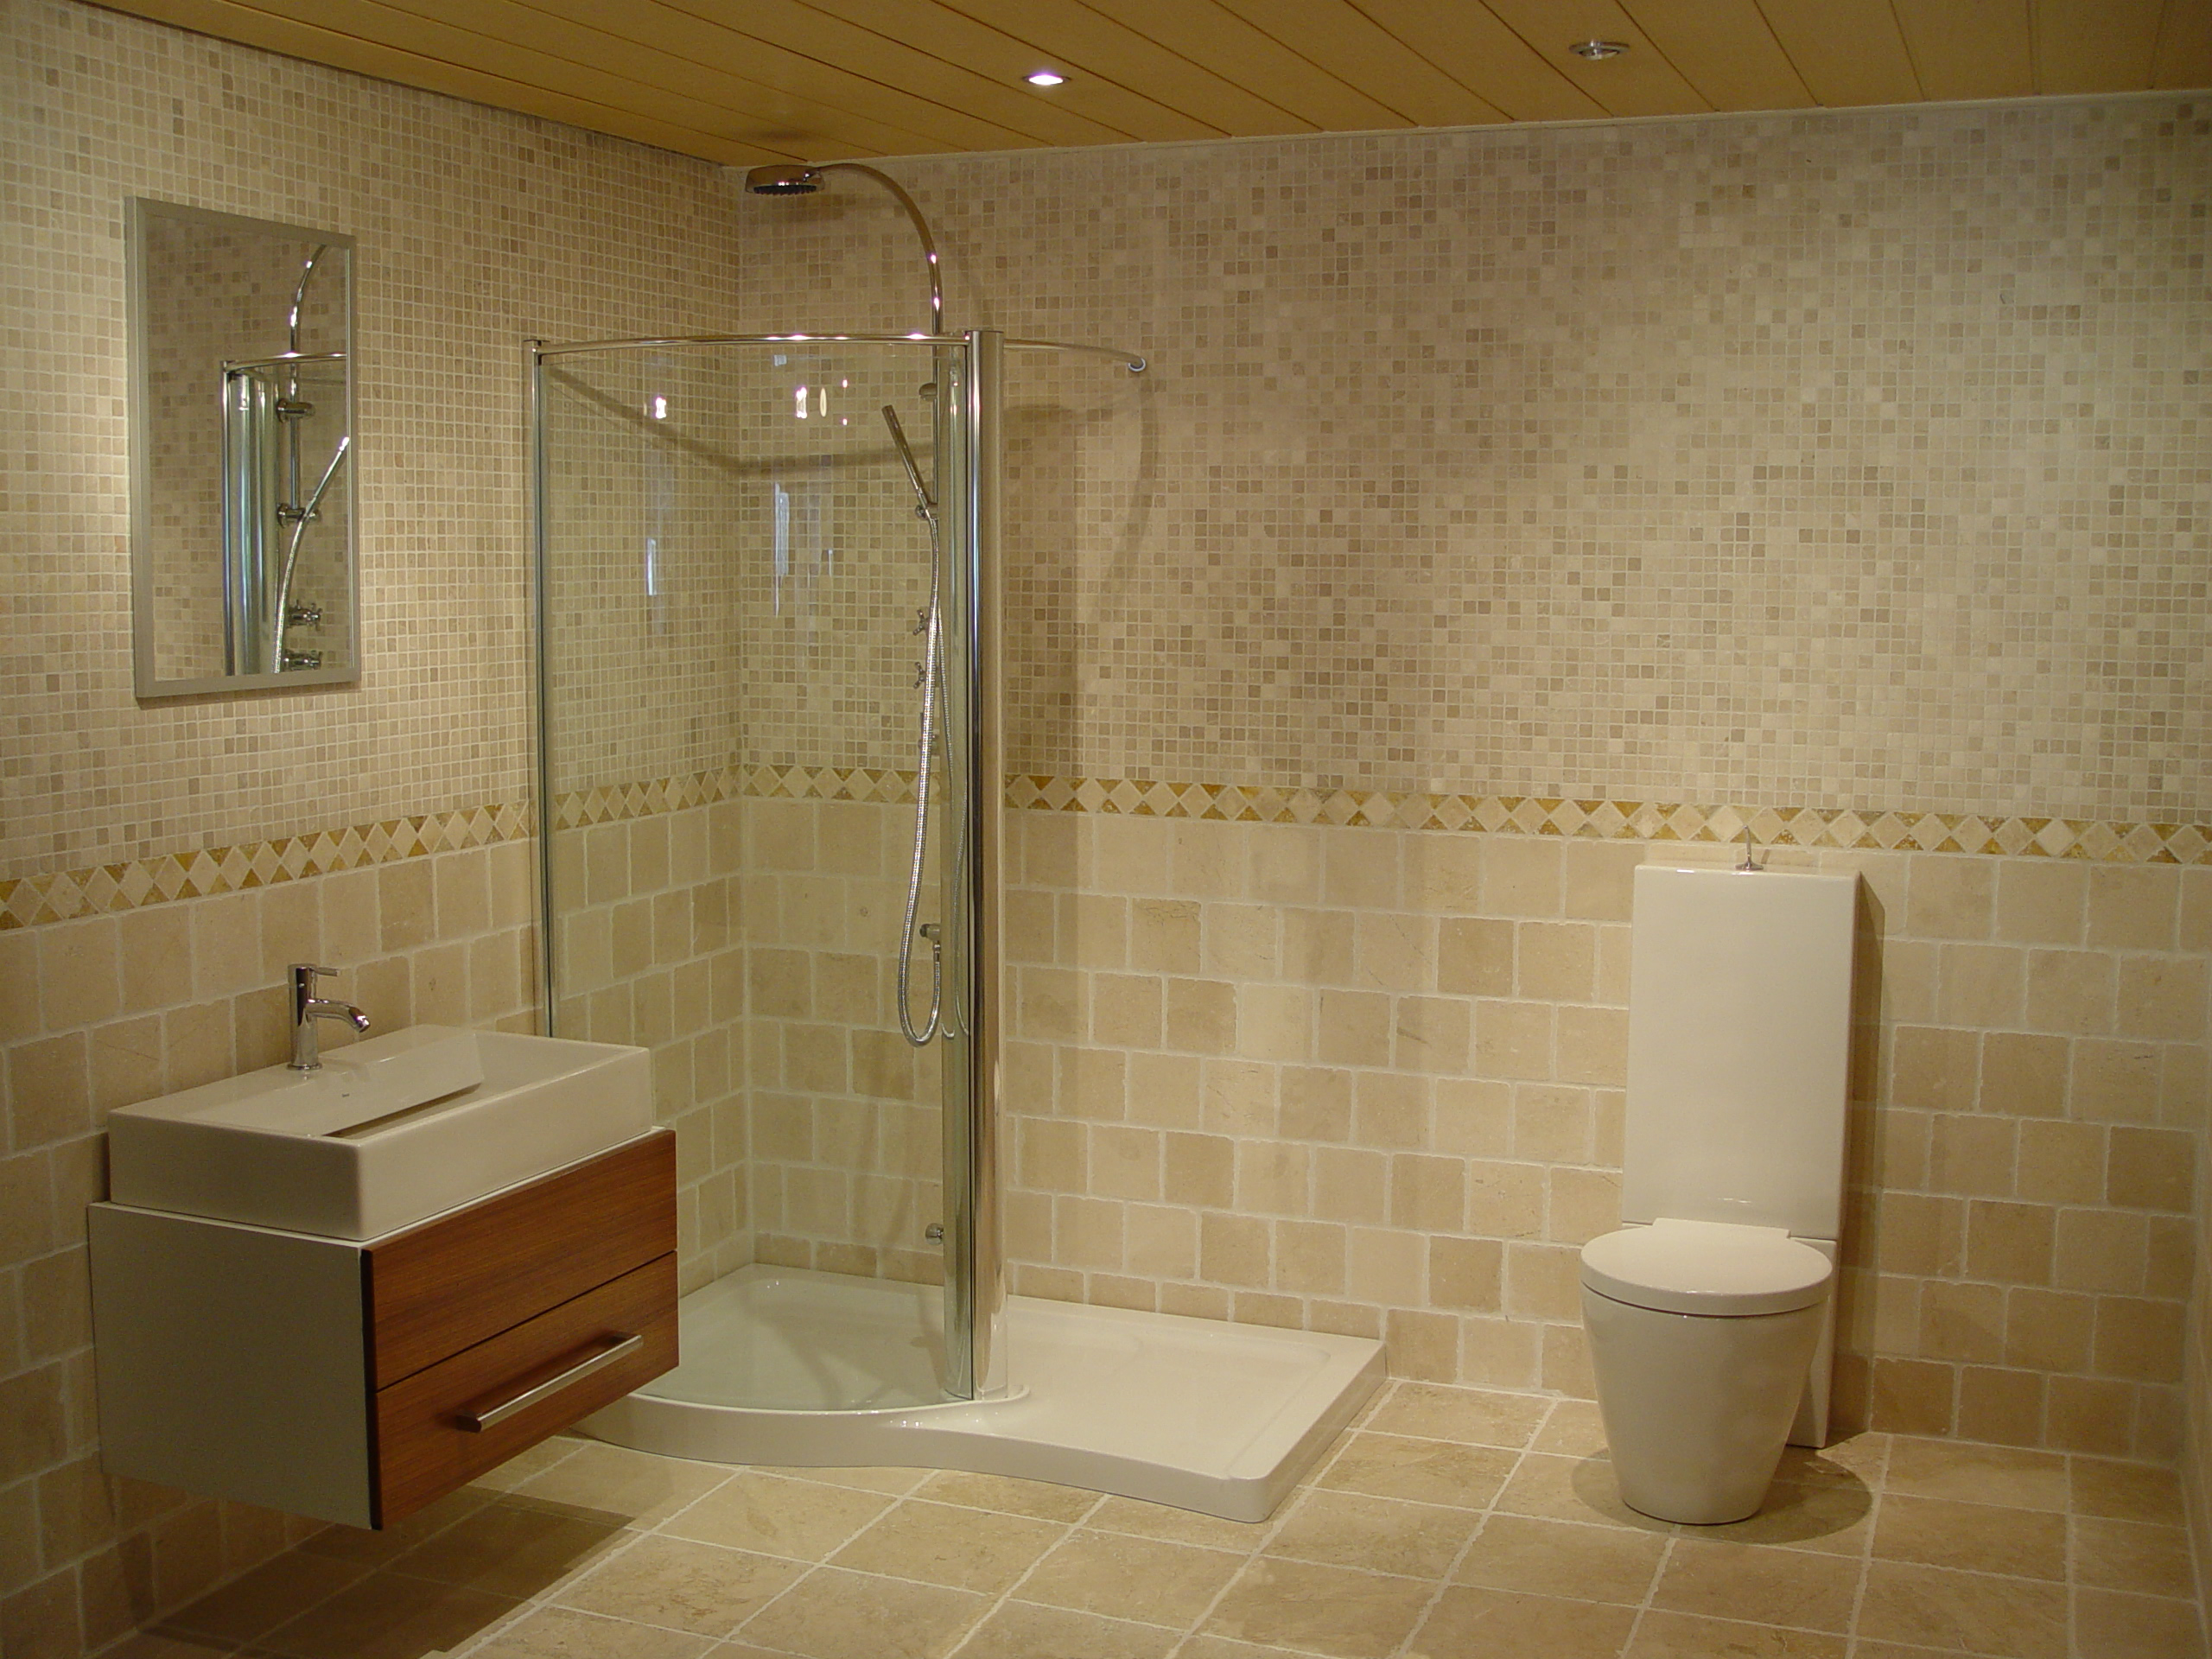 Tile Designs For Bathroom Ideas ~ Small bathrooms designs grasscloth wallpaper